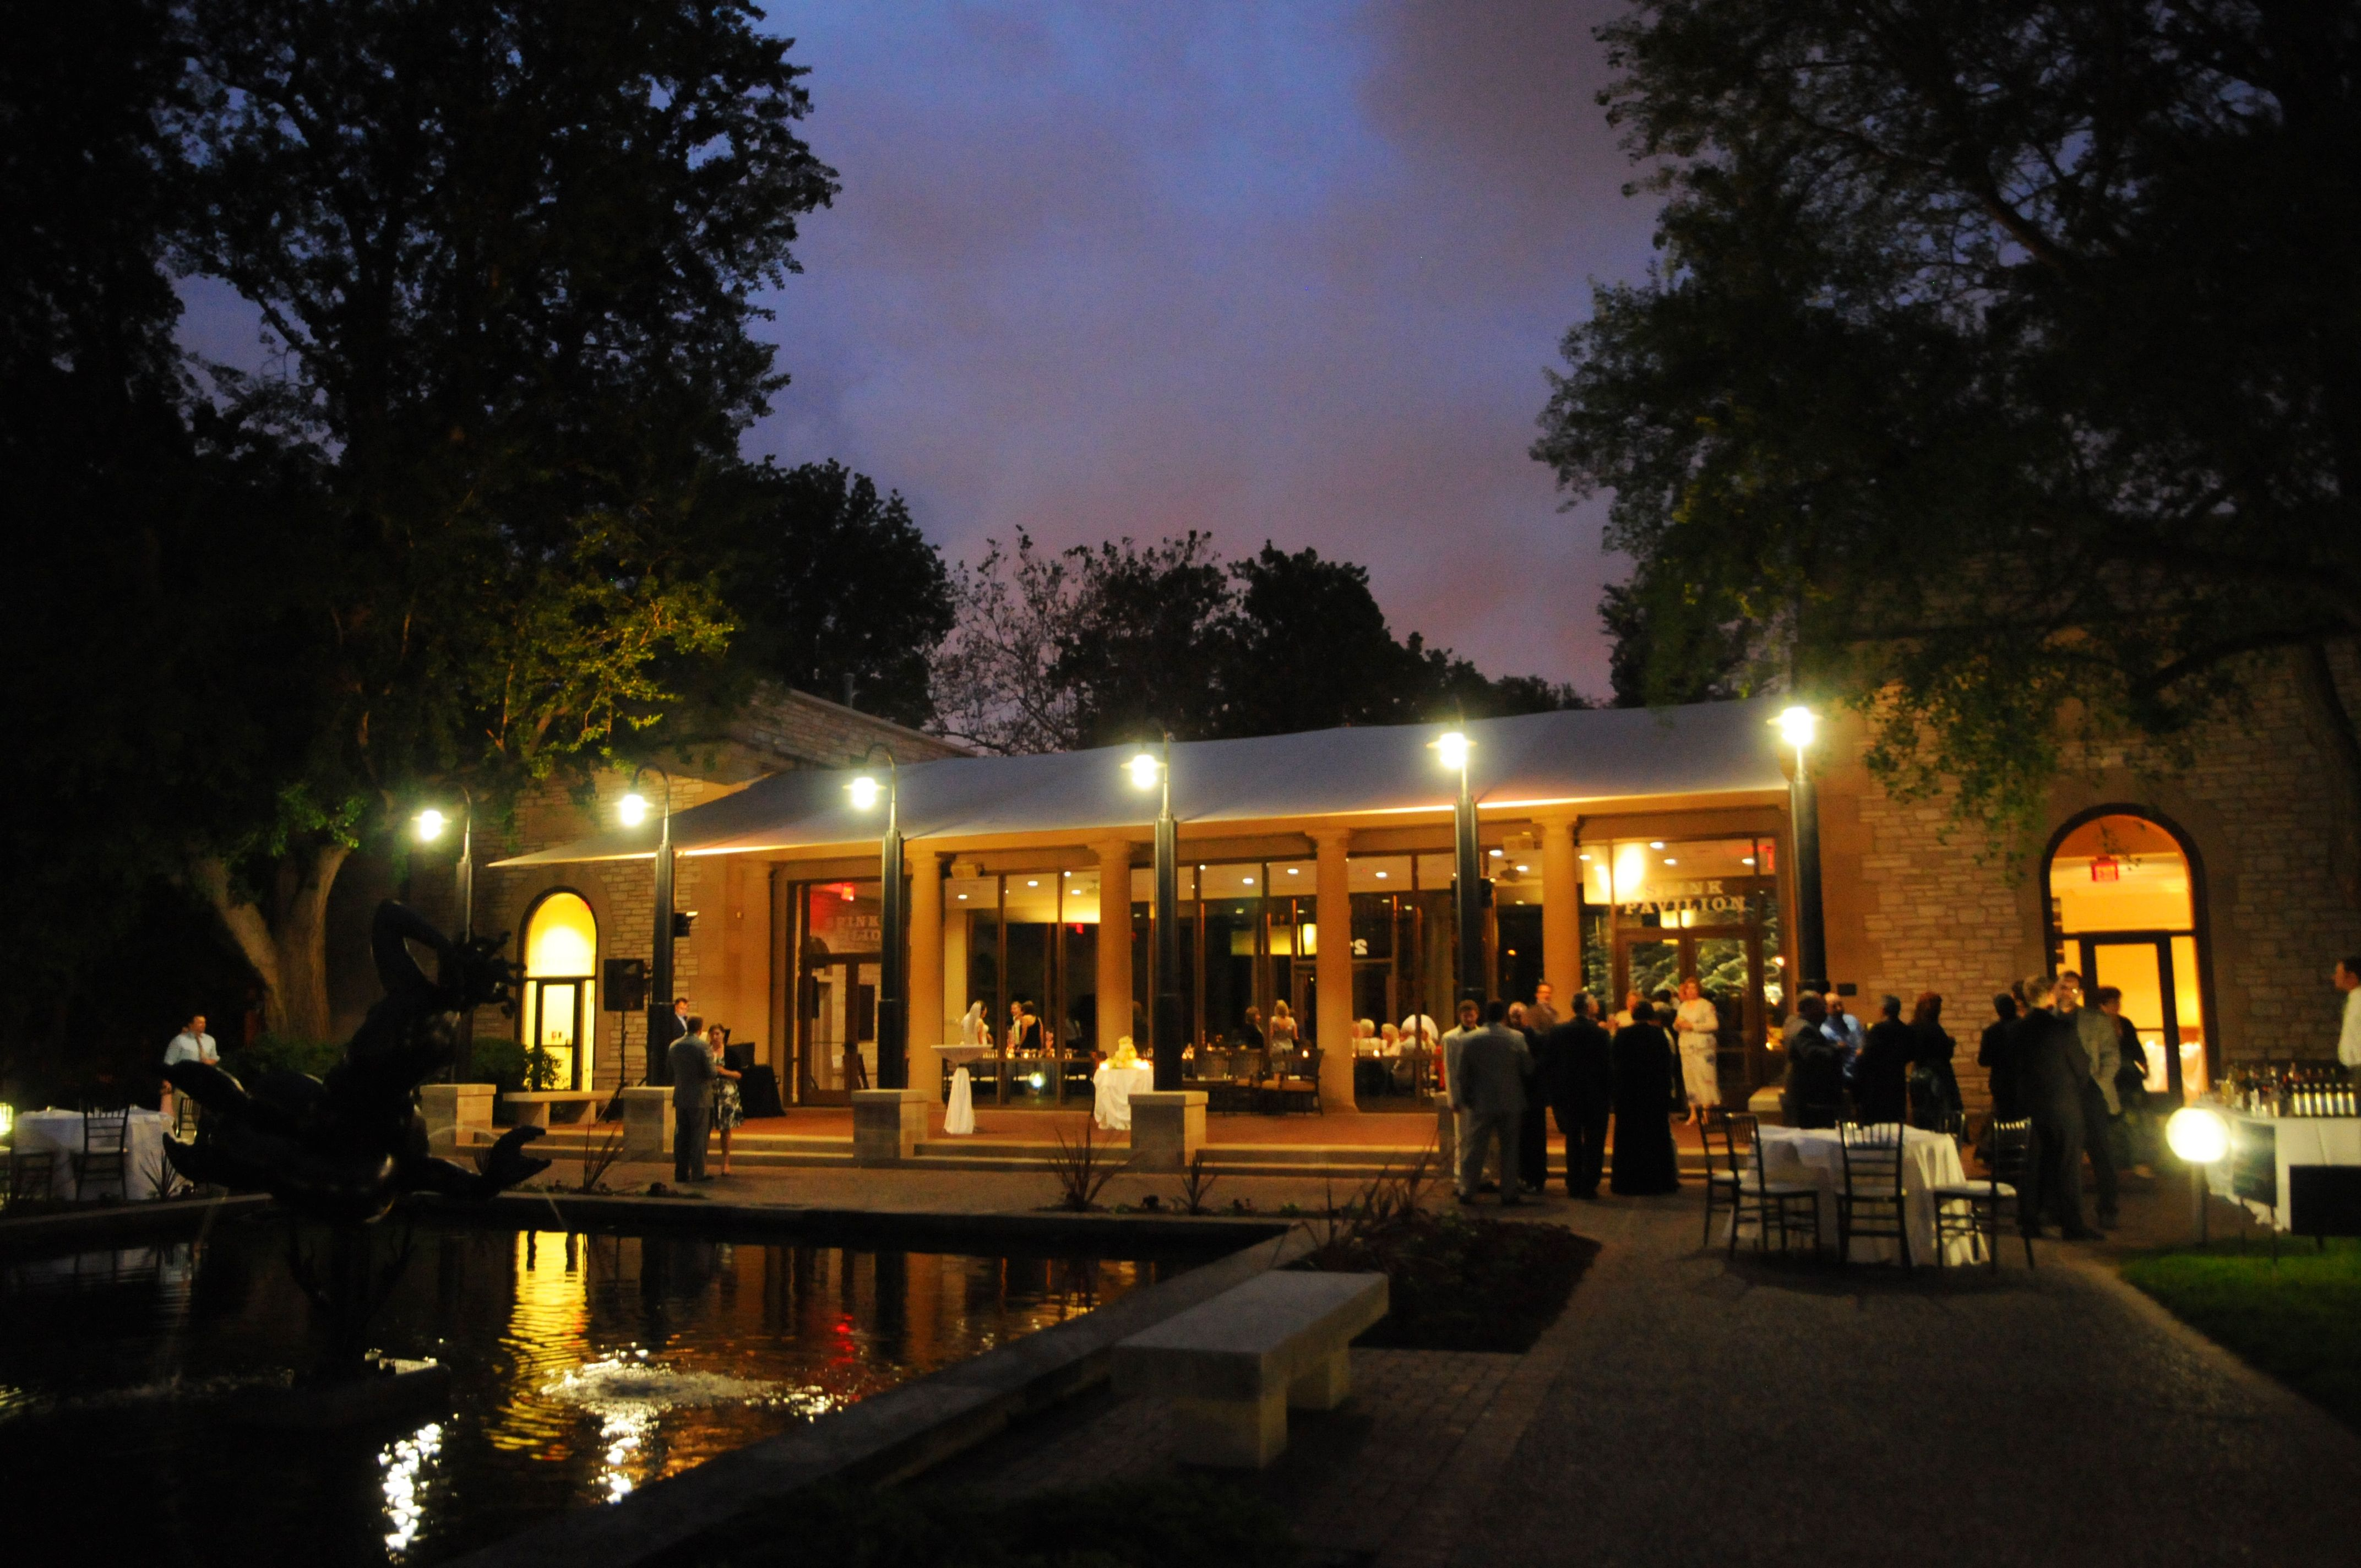 The Spink Pavilion At Night